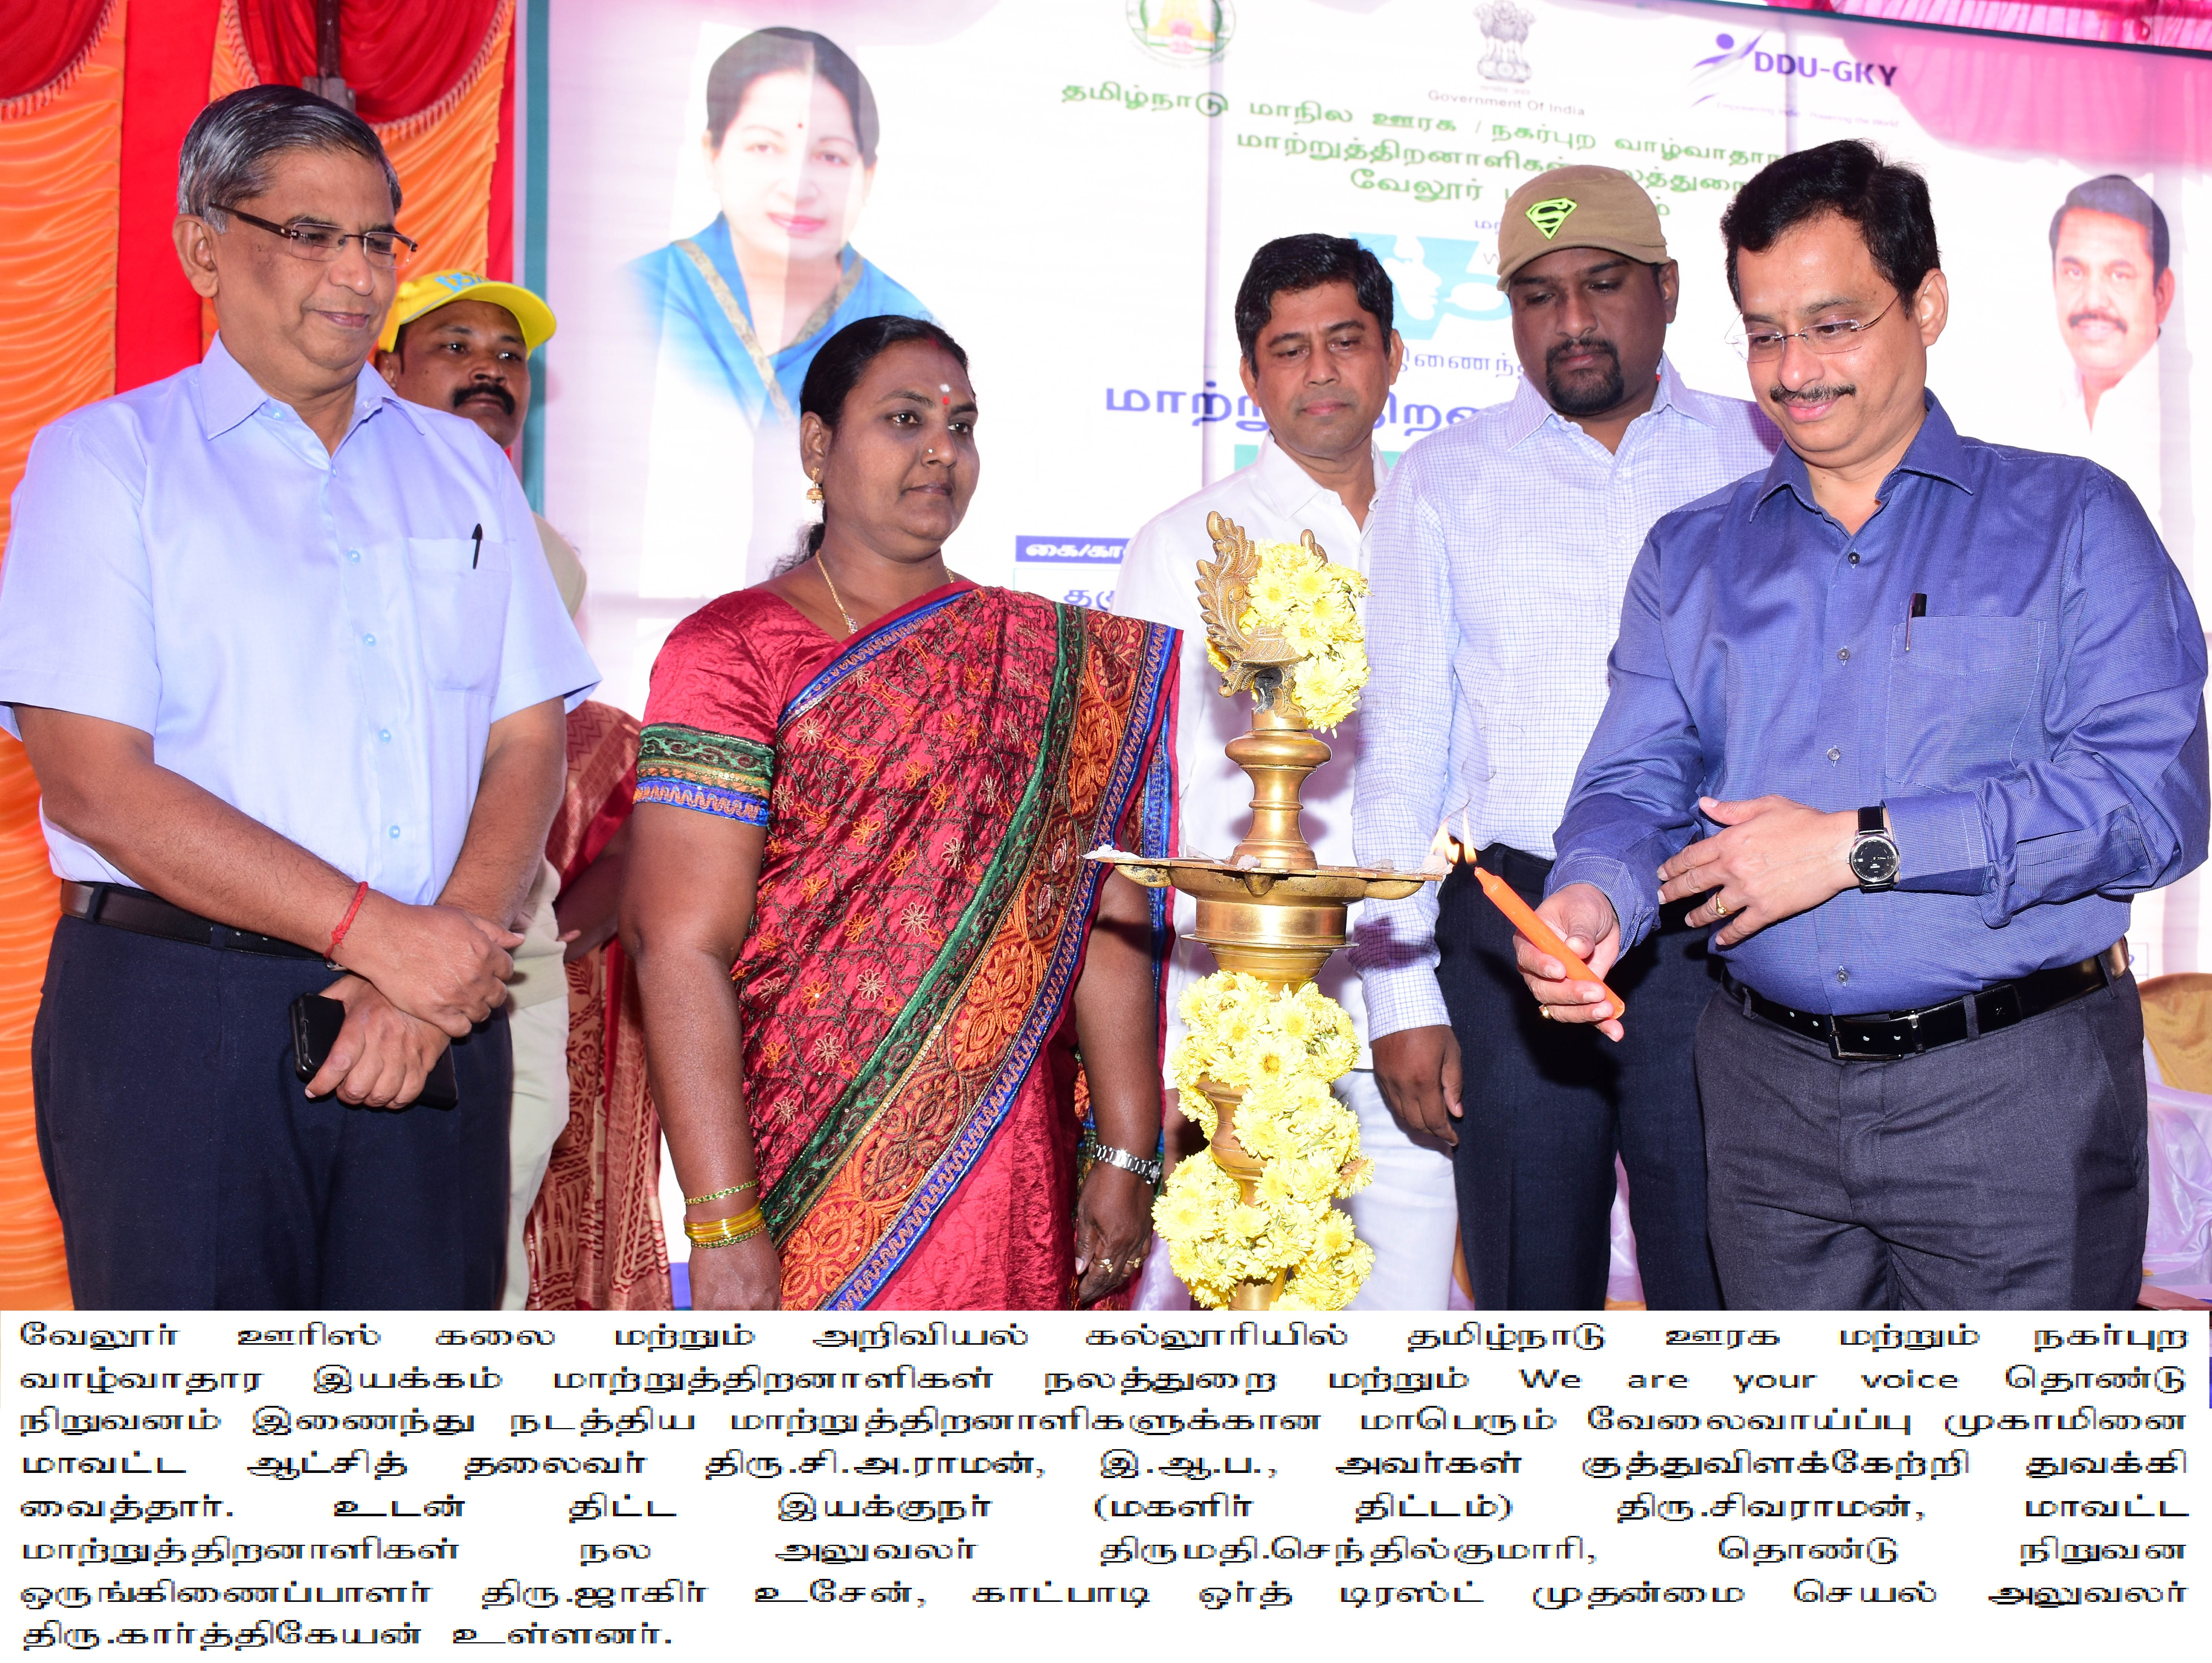 Differently abled Job fair